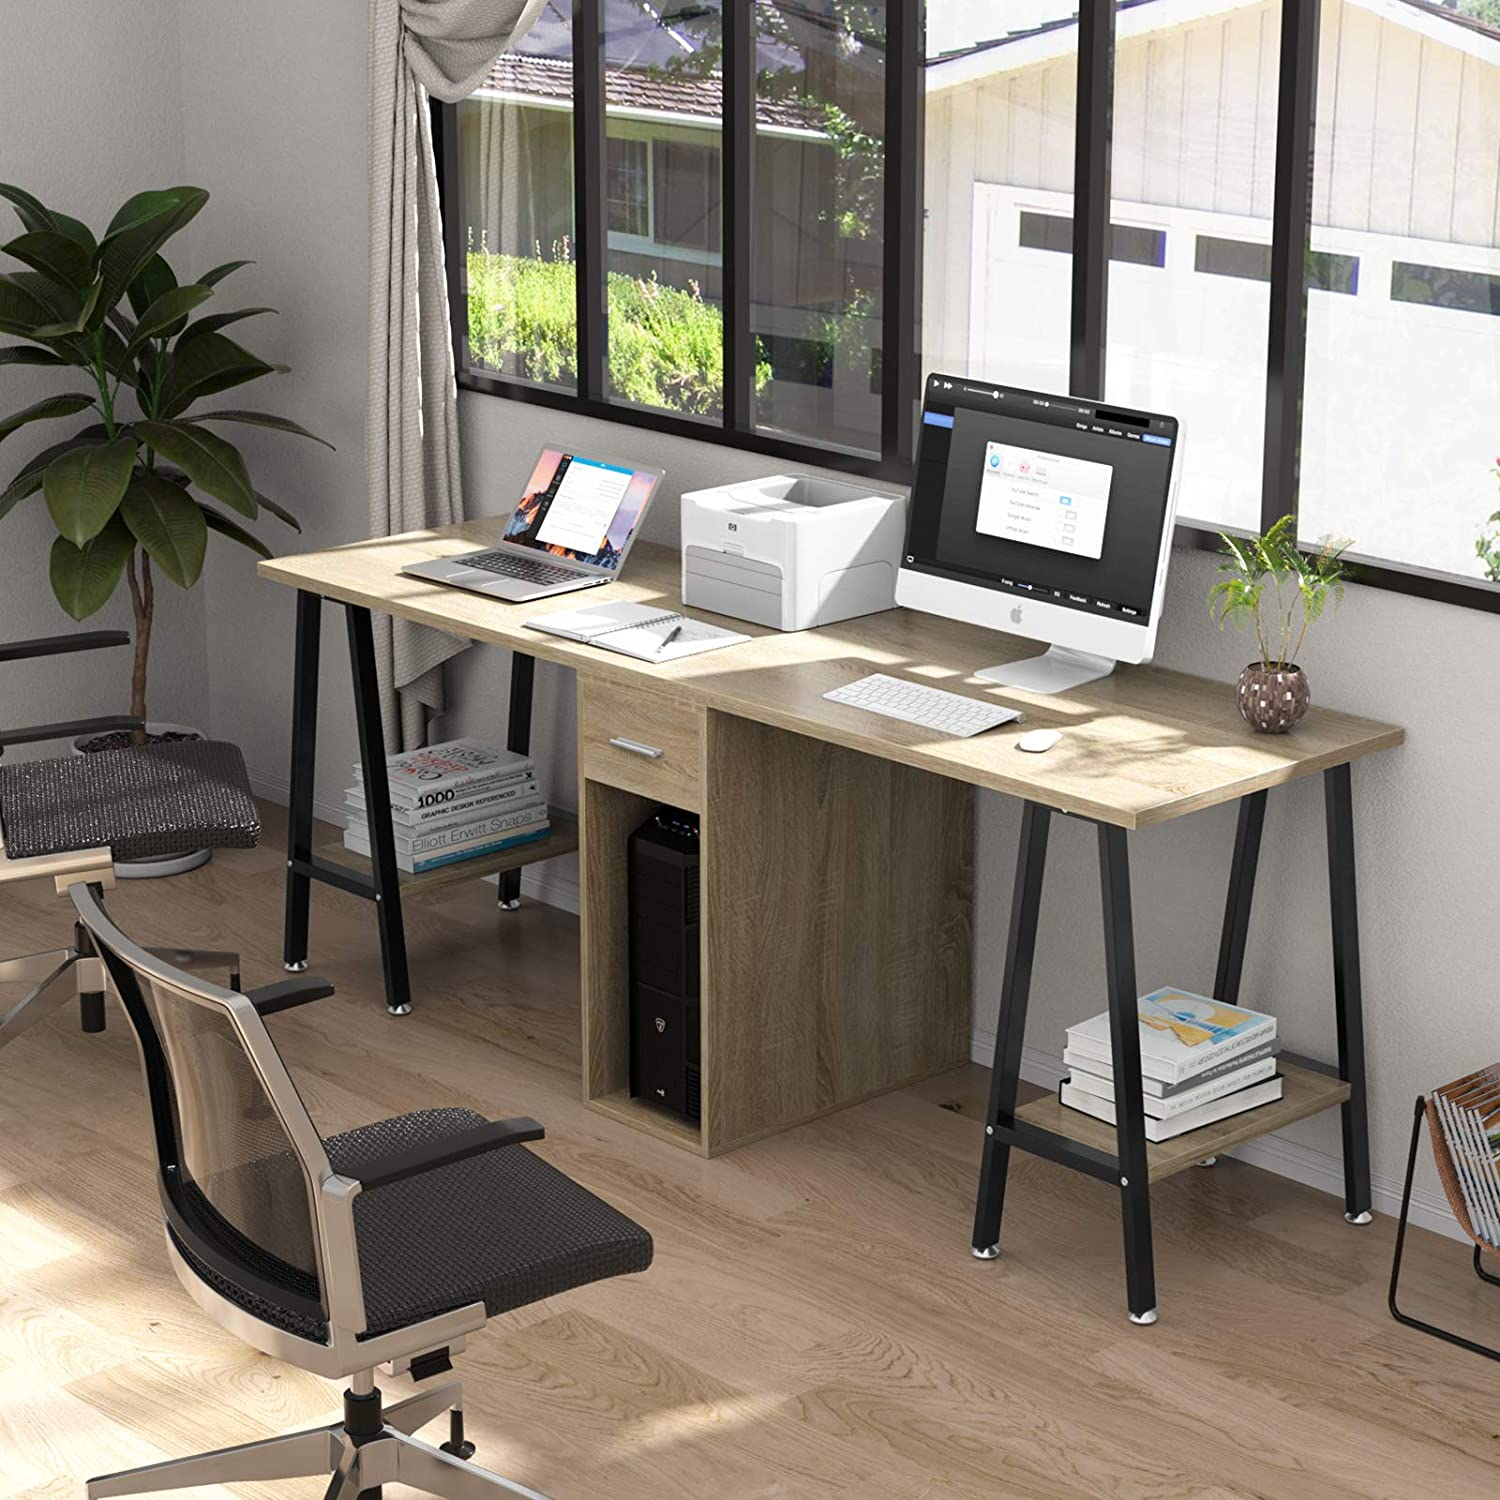 DEWEL Selling rankings 78inch Two Purchase Person Computer with Desk Workstation Dr Double